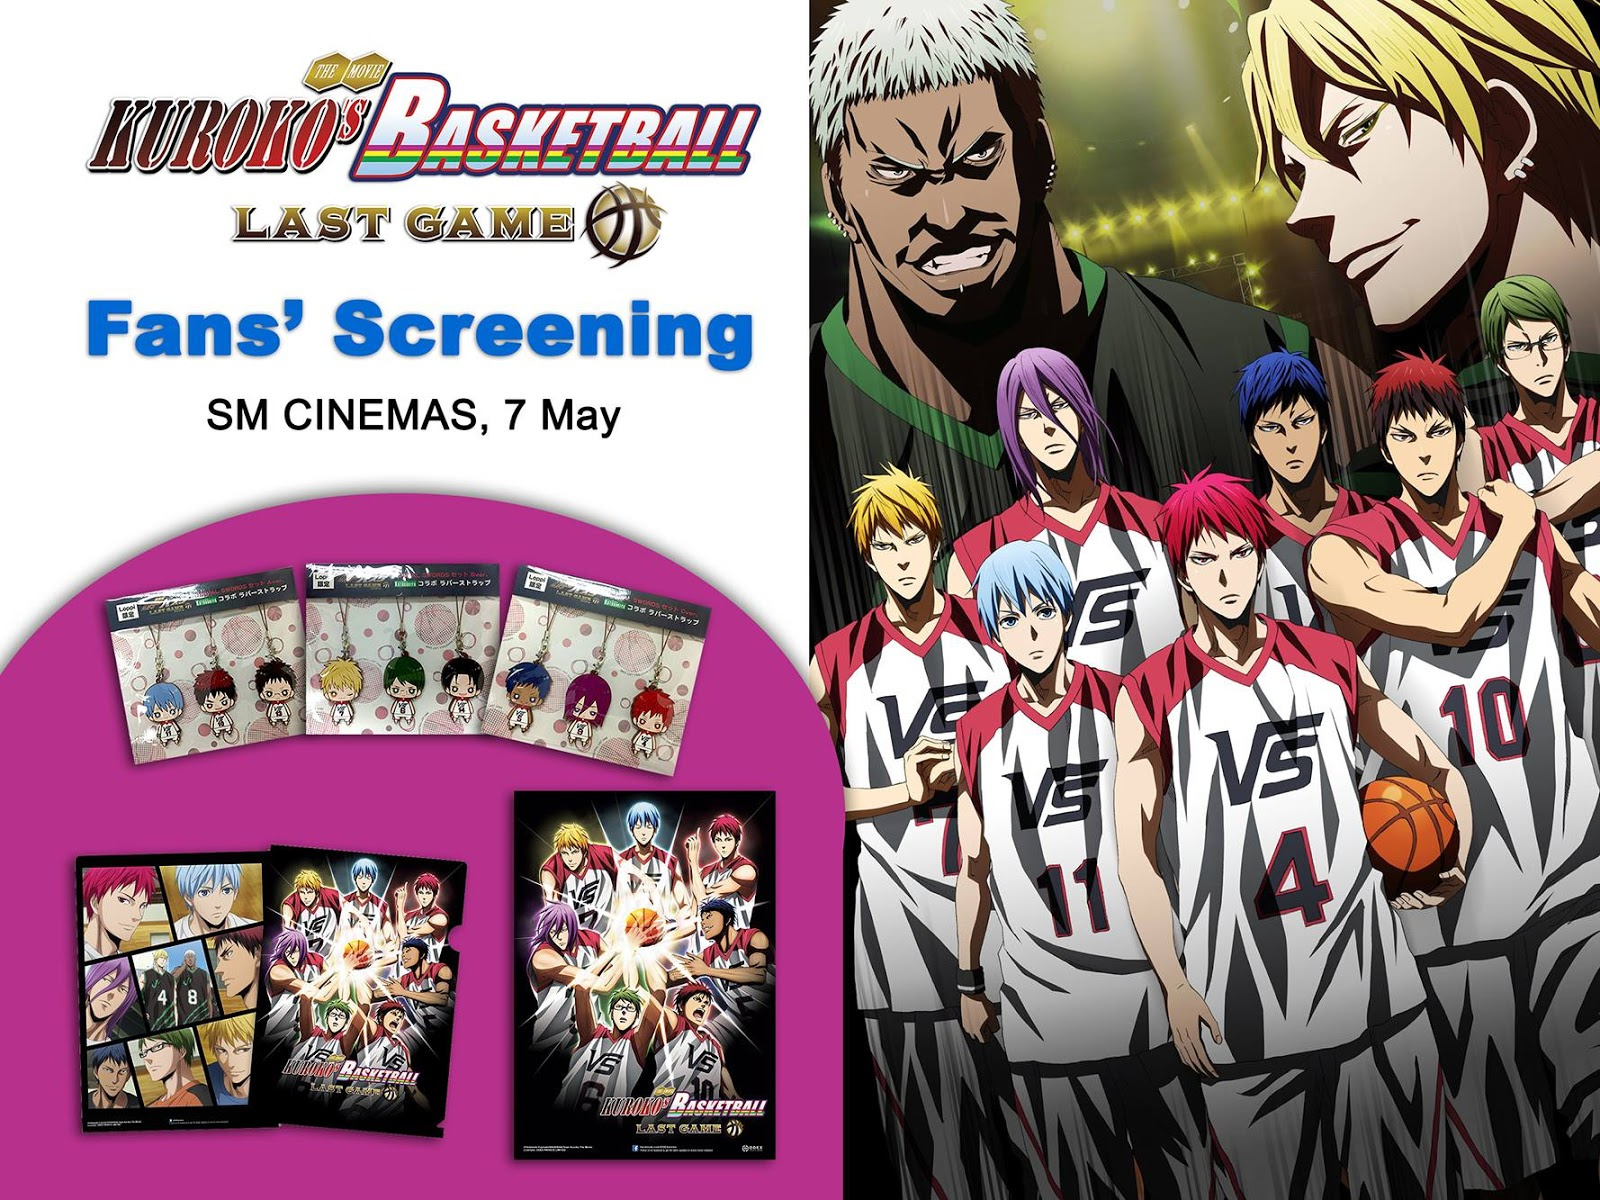 Kuroko No Basket Last Game Fans Screening In The Philippines With